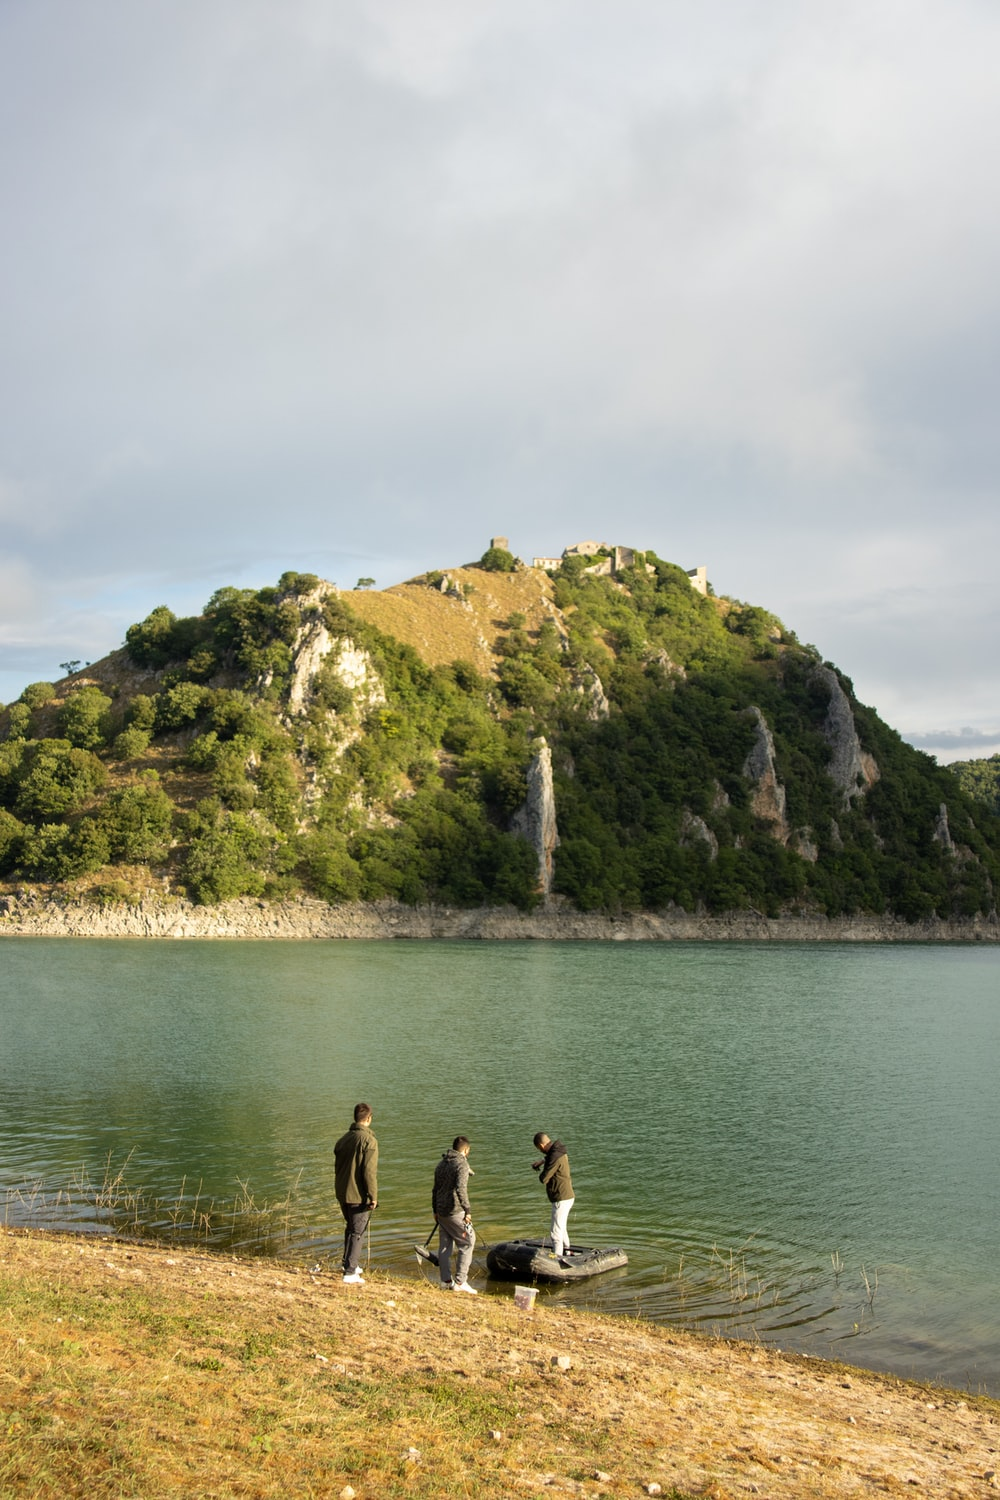 2 men standing on rock formation near body of water during daytime